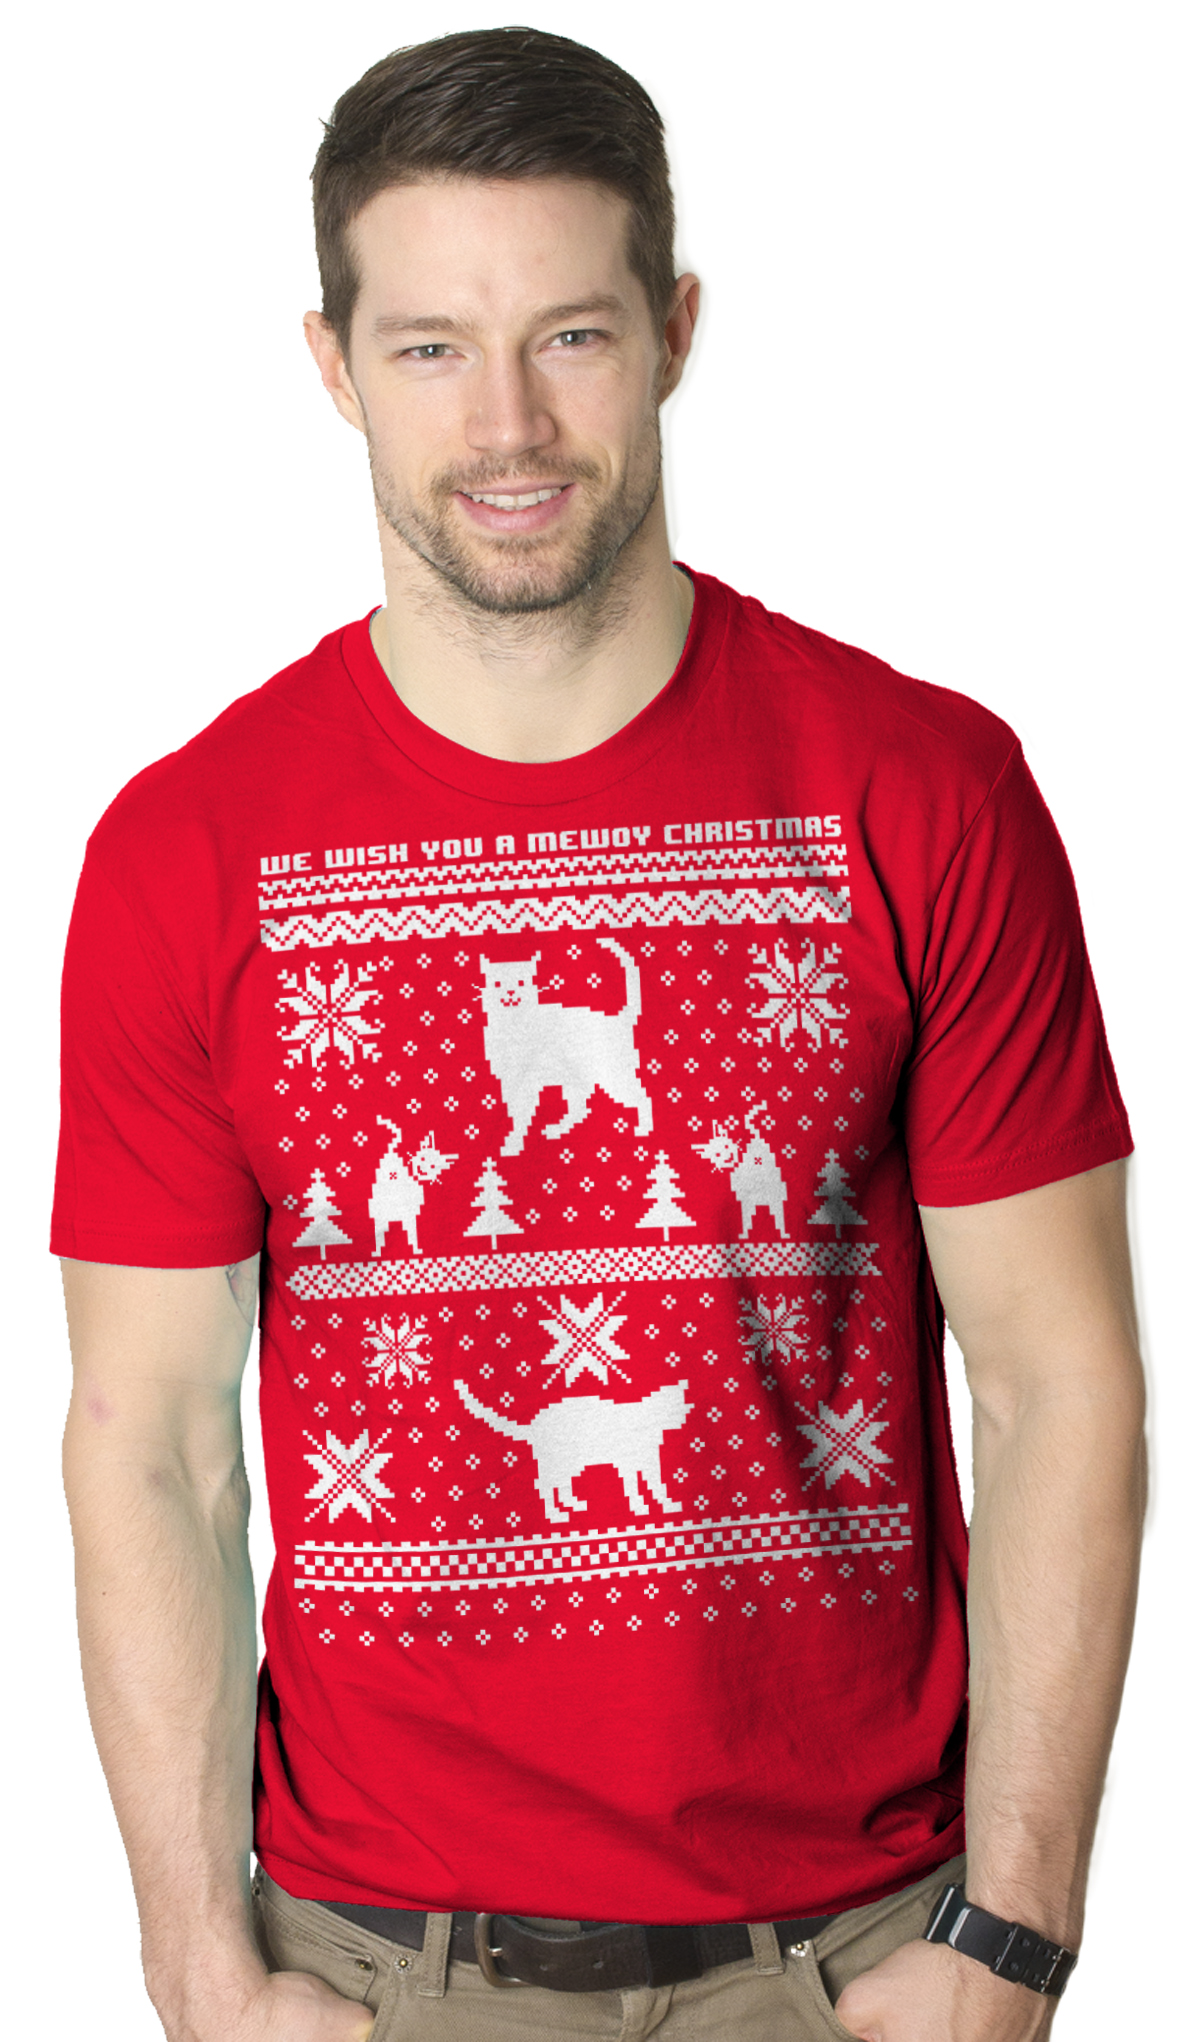 Butt ugly christmas sweaters